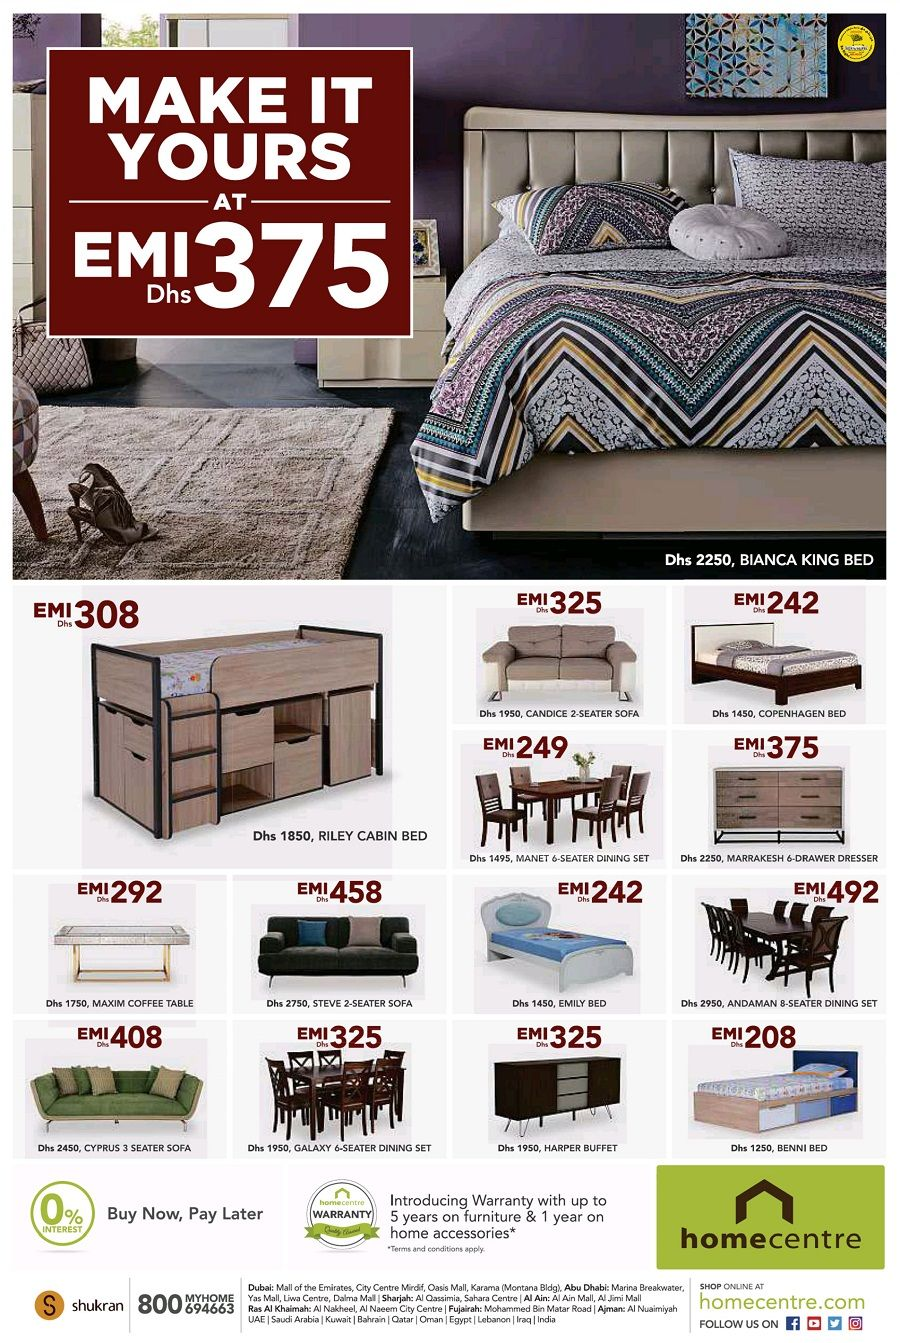 Buy Now Pay Later Offers At Home Centre Dubai And Avail 0 Interest On Monthly